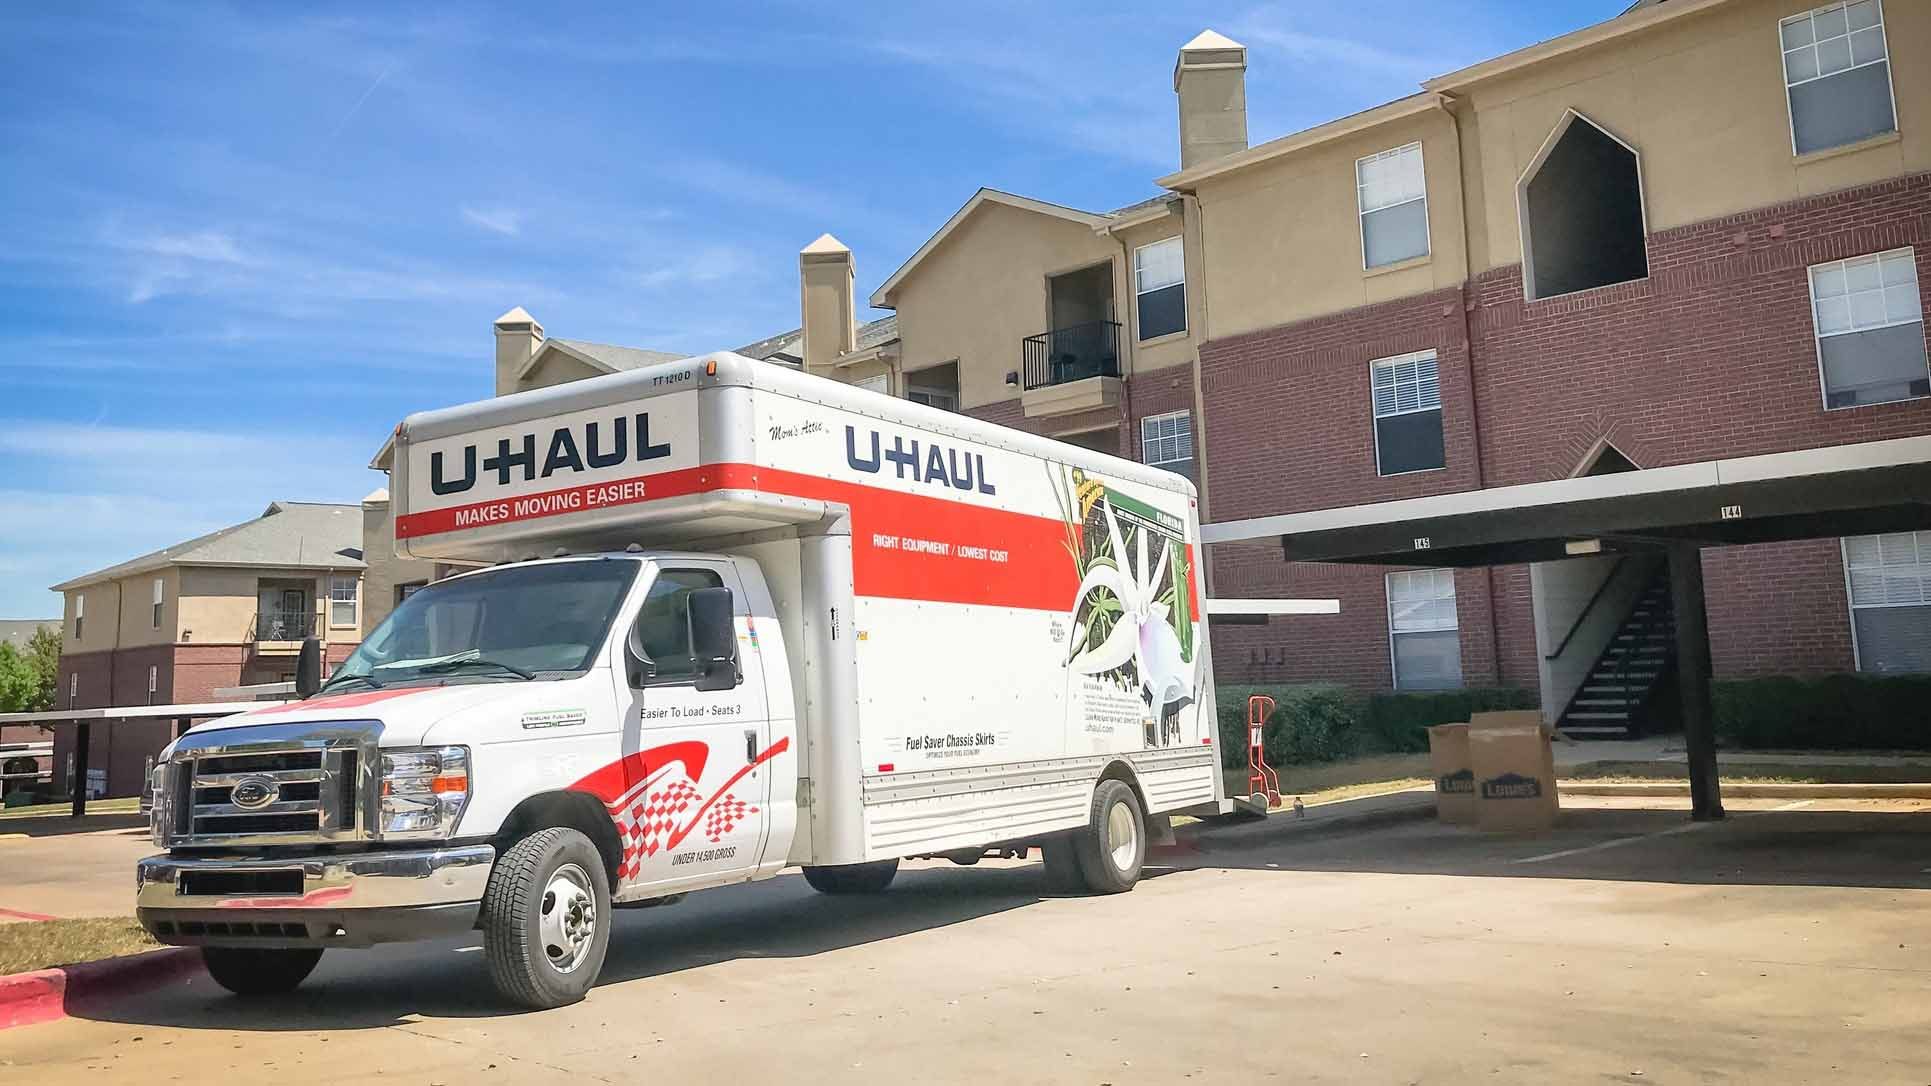 Webinar Replay - Thinking Outside the Cubicle: A Work from Home Success Story with U-Haul (Next One March 31)